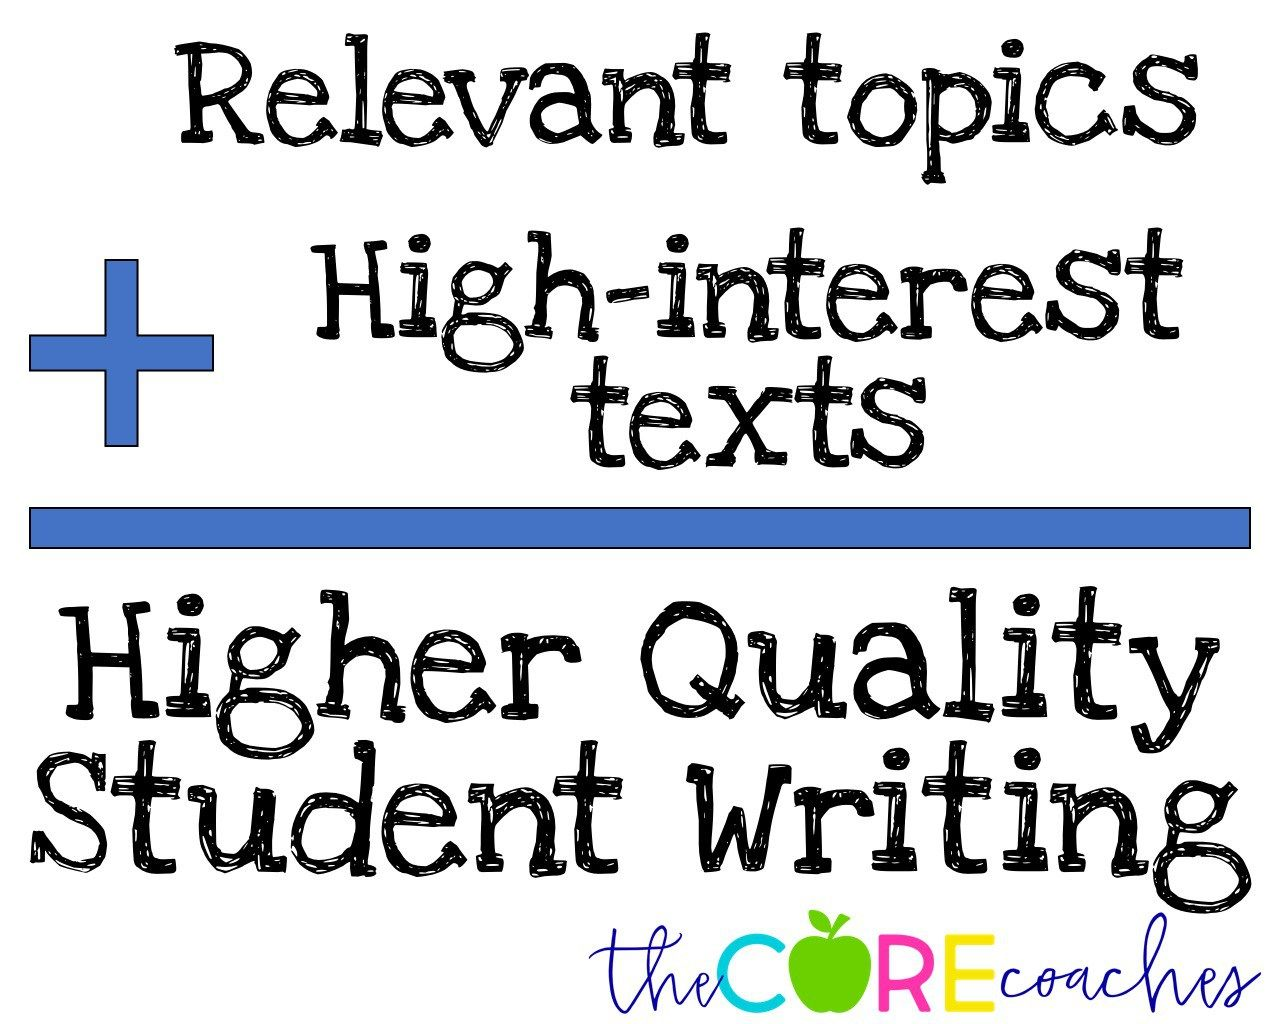 Encourage quality writing from students using relevant